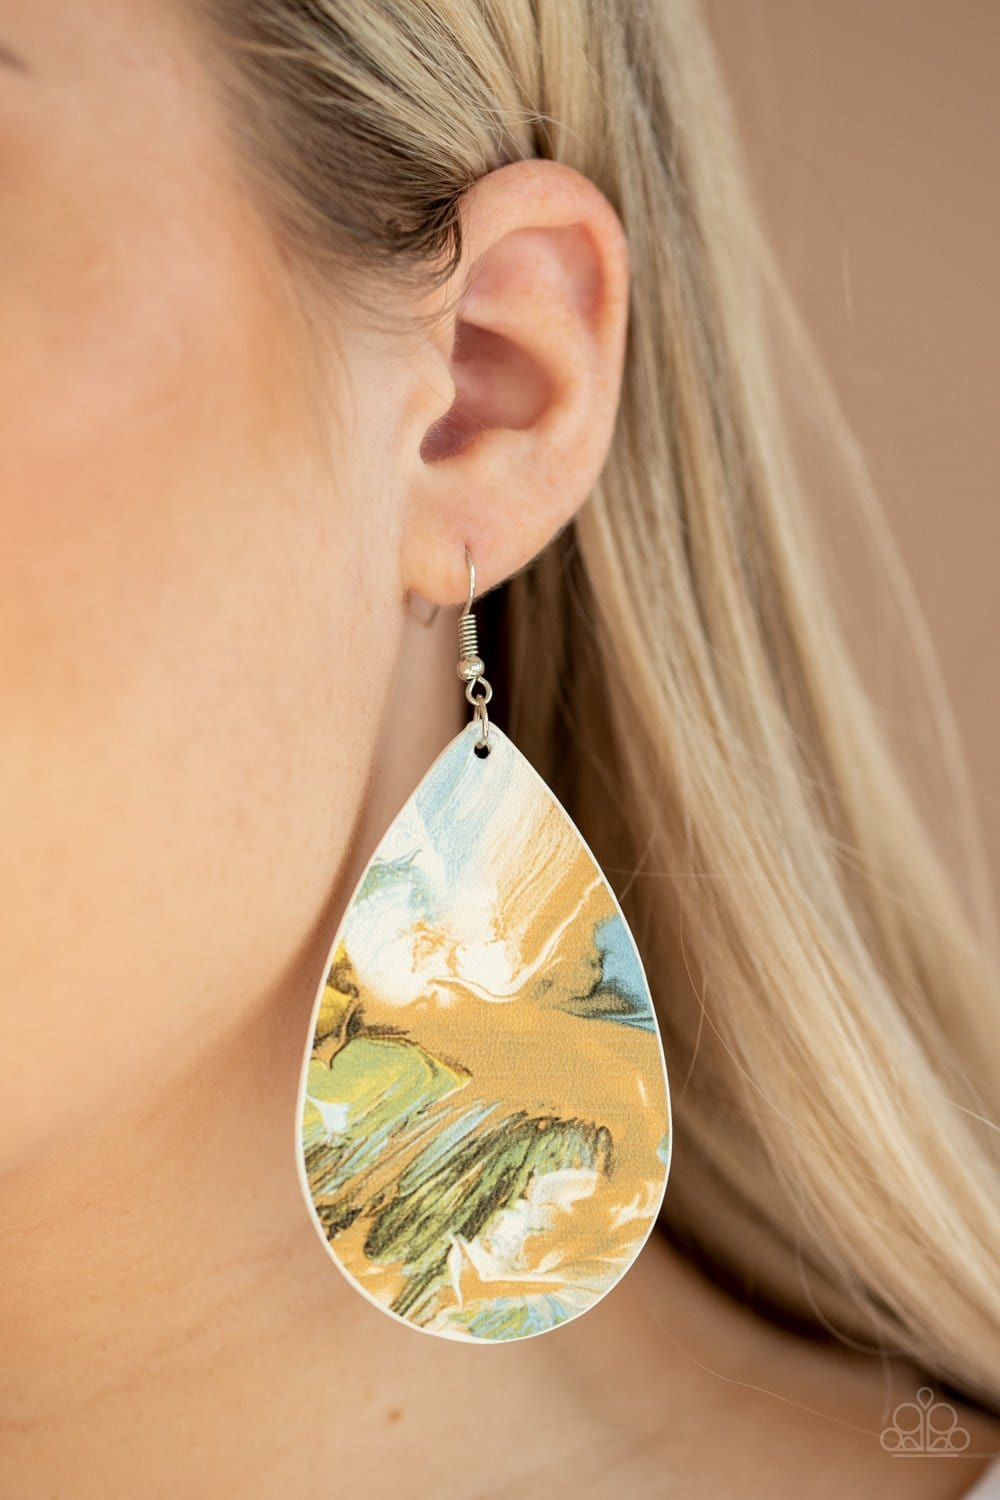 Mesmerizing Mosaic - Multi Leathery Earrings: Paparazzi